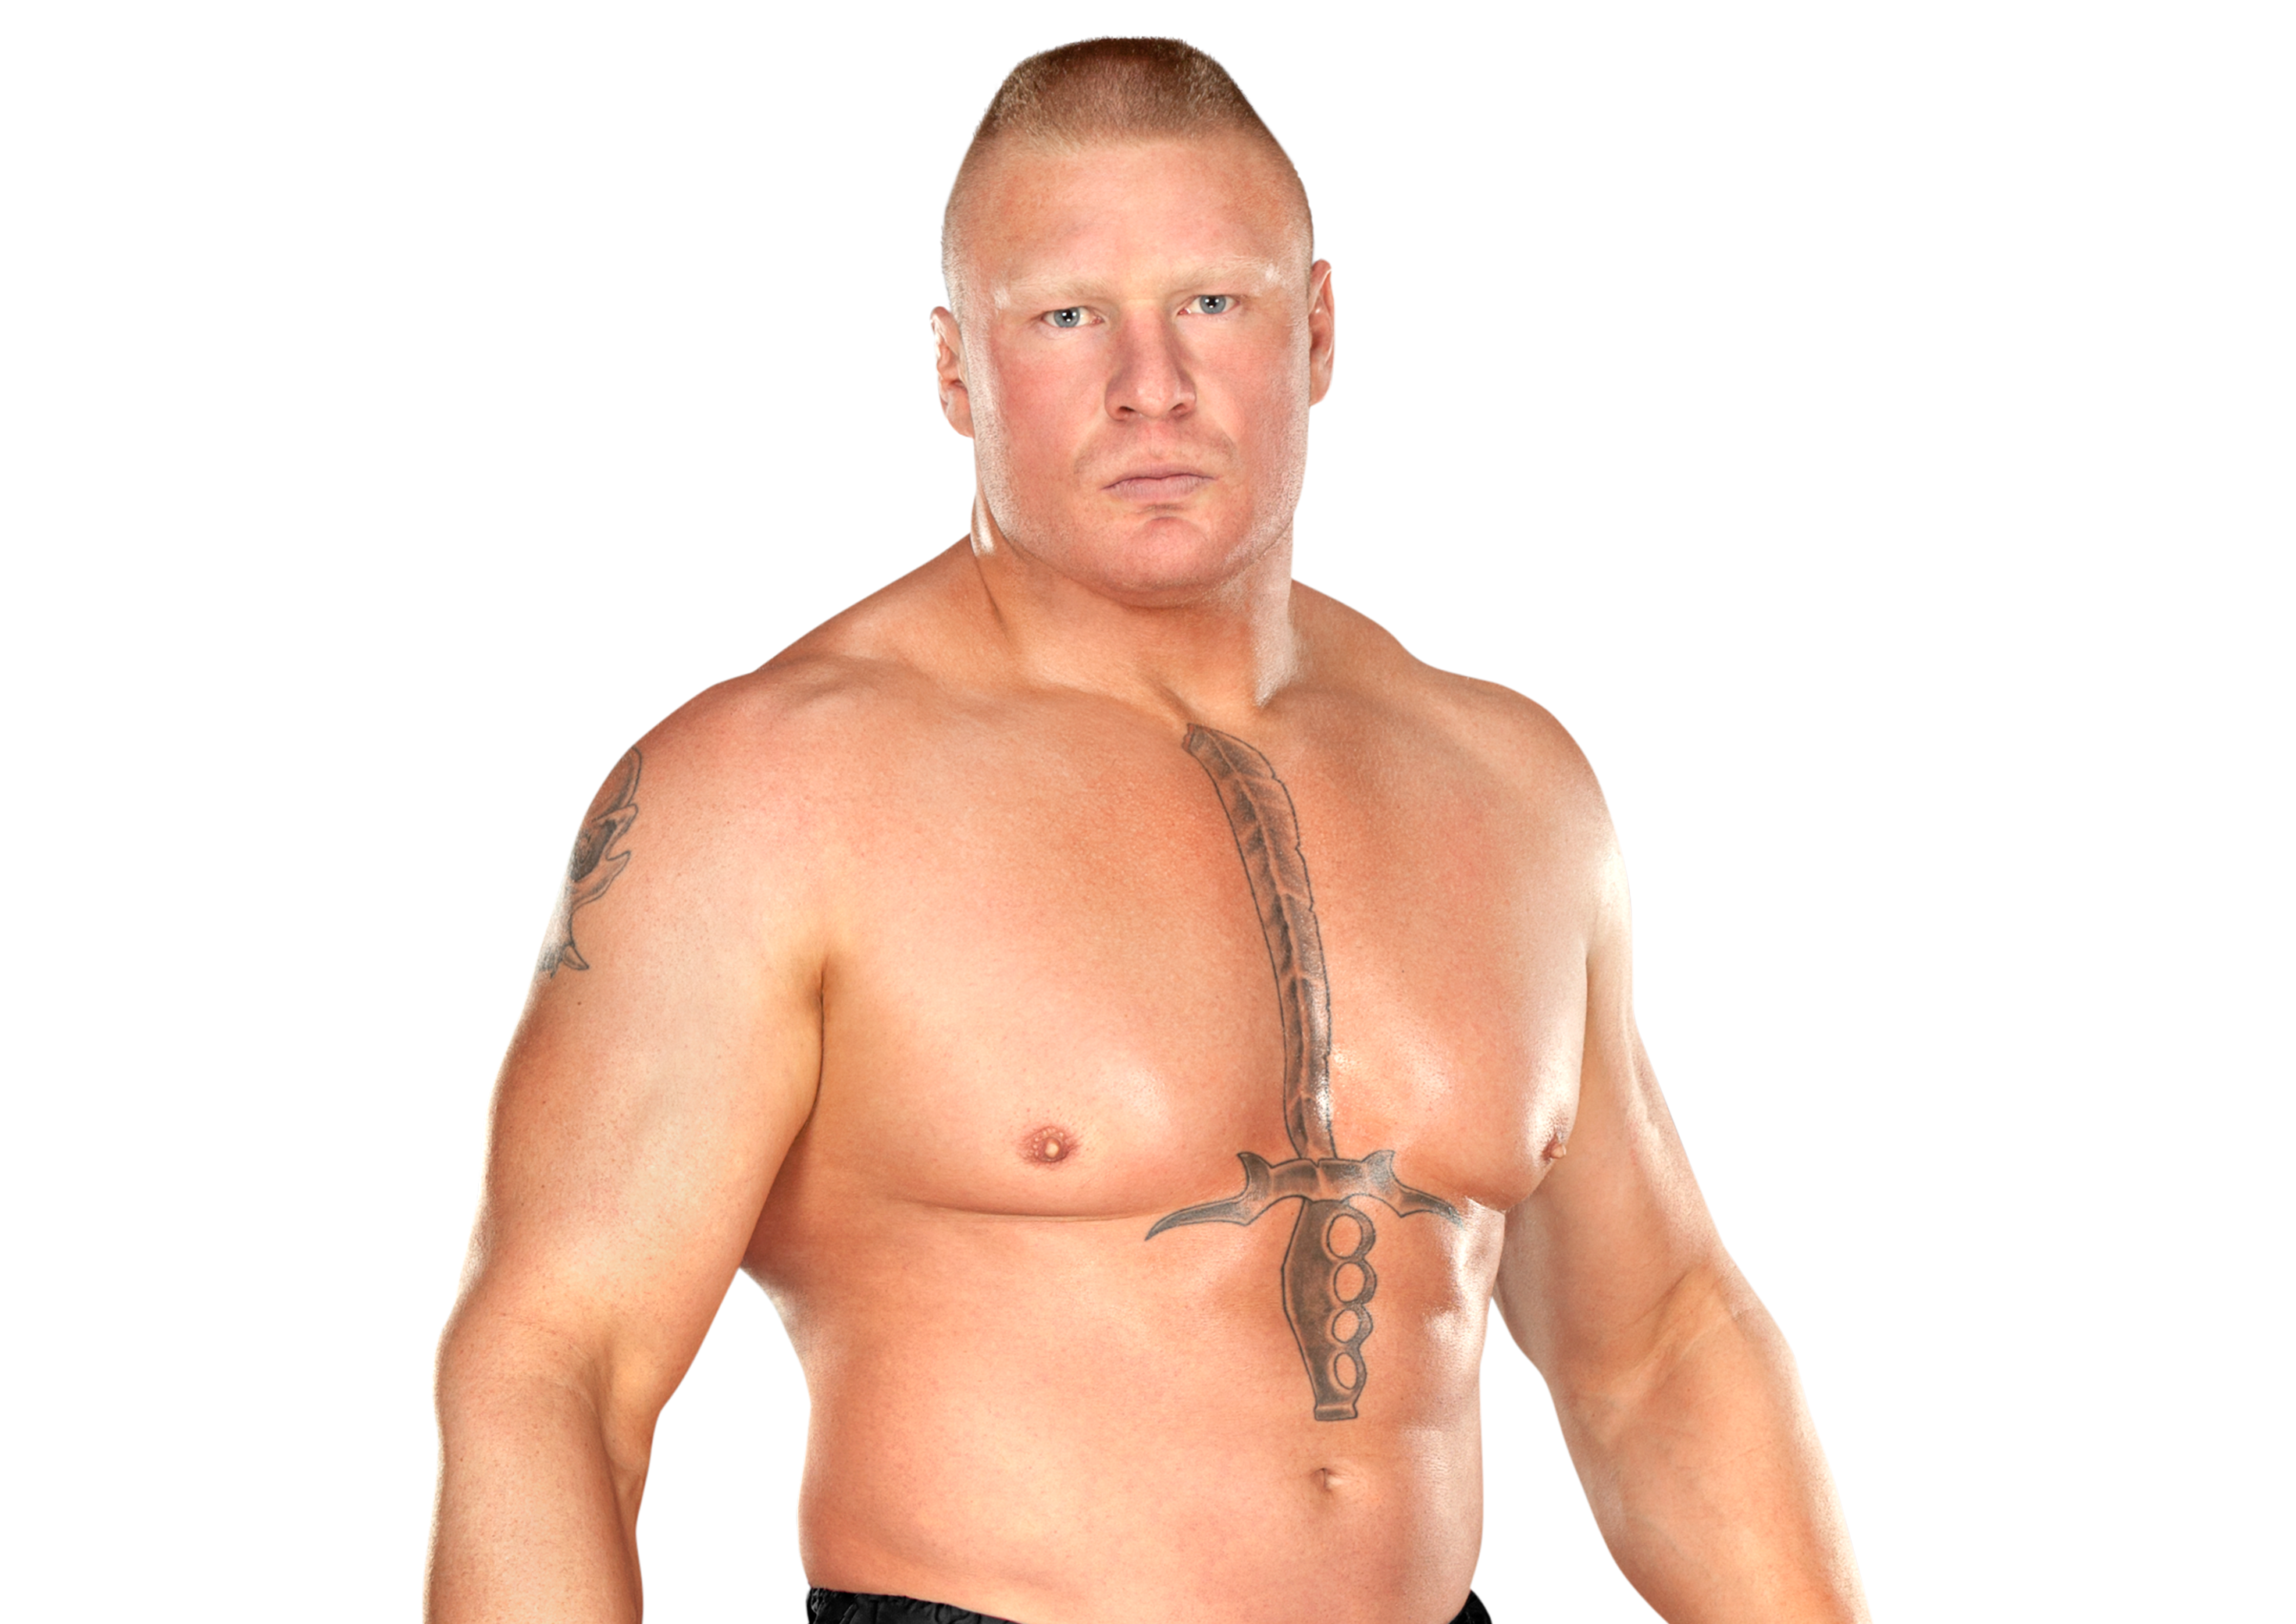 Found some interesting profile images from the new WWE.com